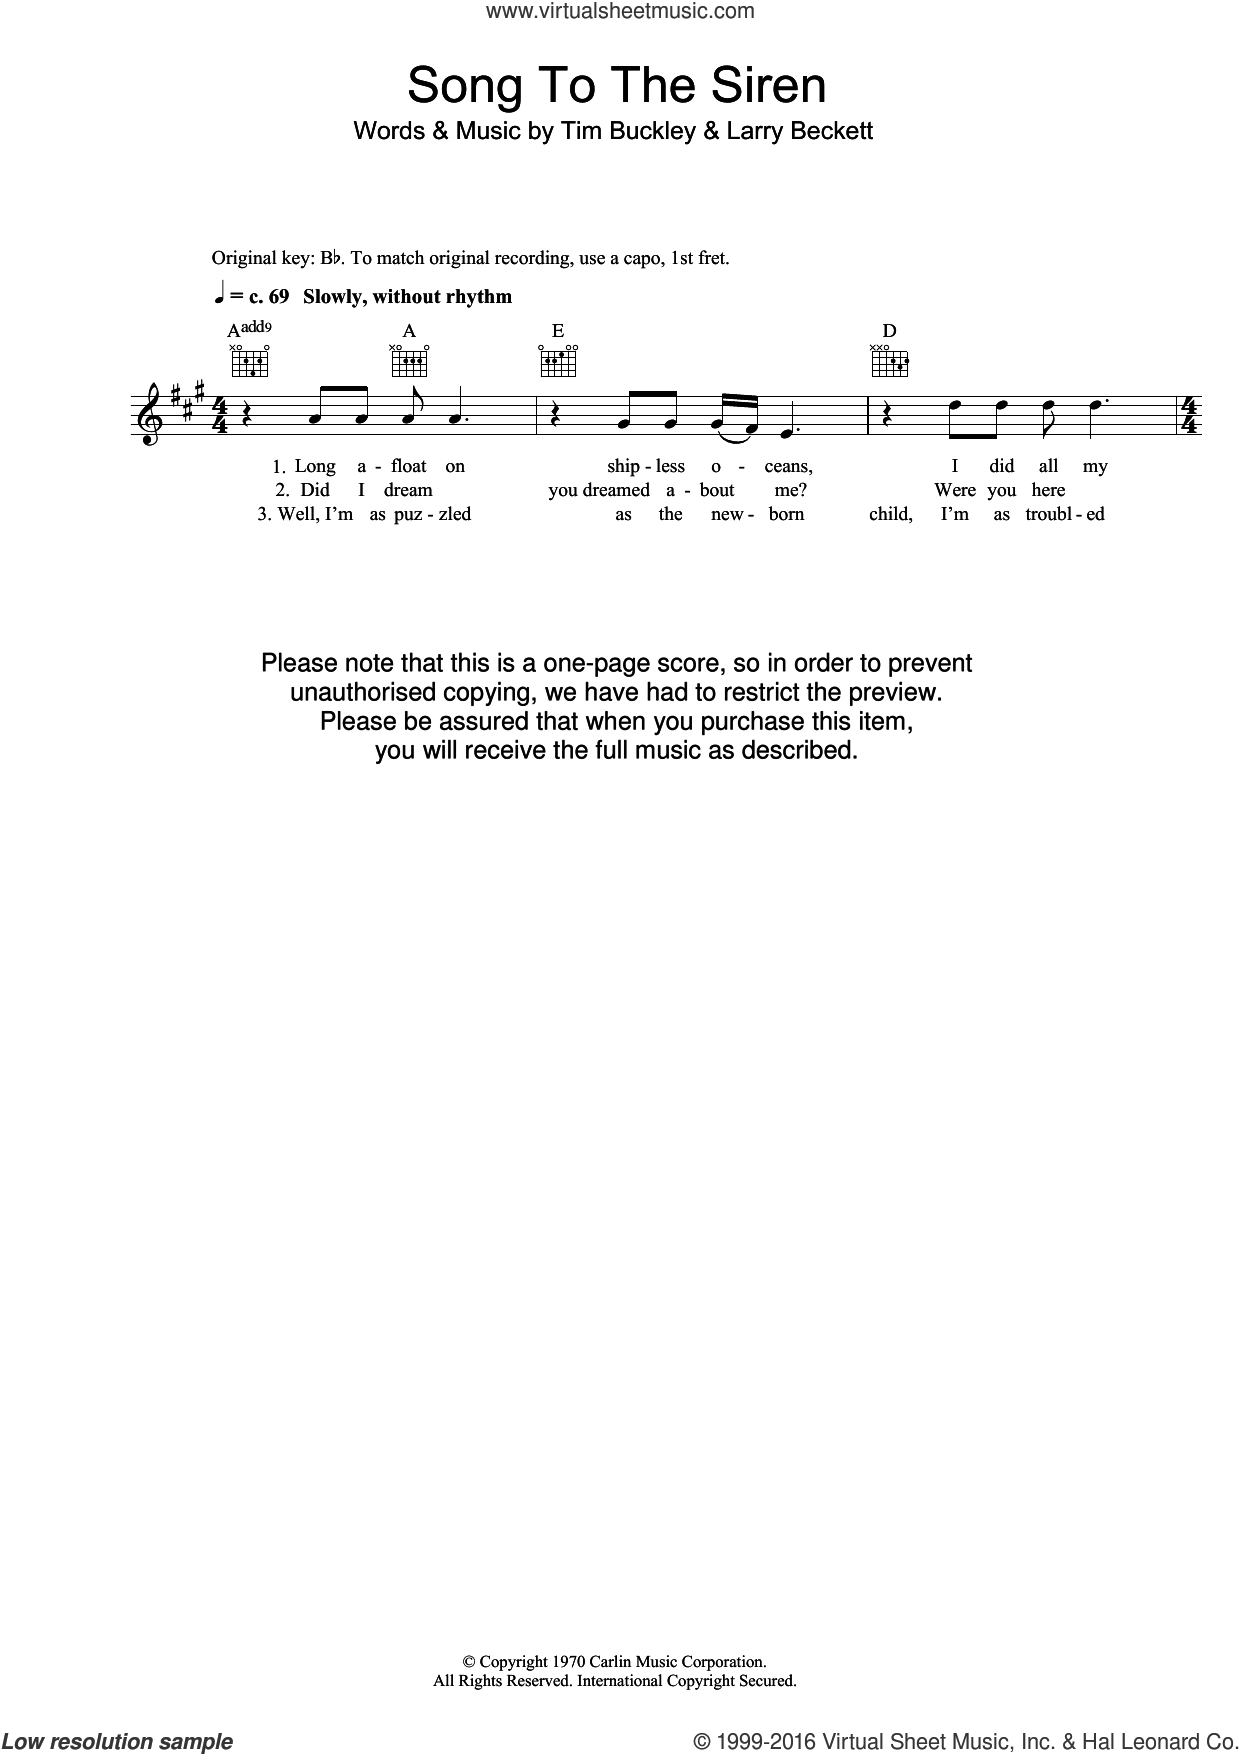 Song To The Siren sheet music for voice and other instruments (fake book) by Tim Buckley and Larry Beckett, intermediate skill level